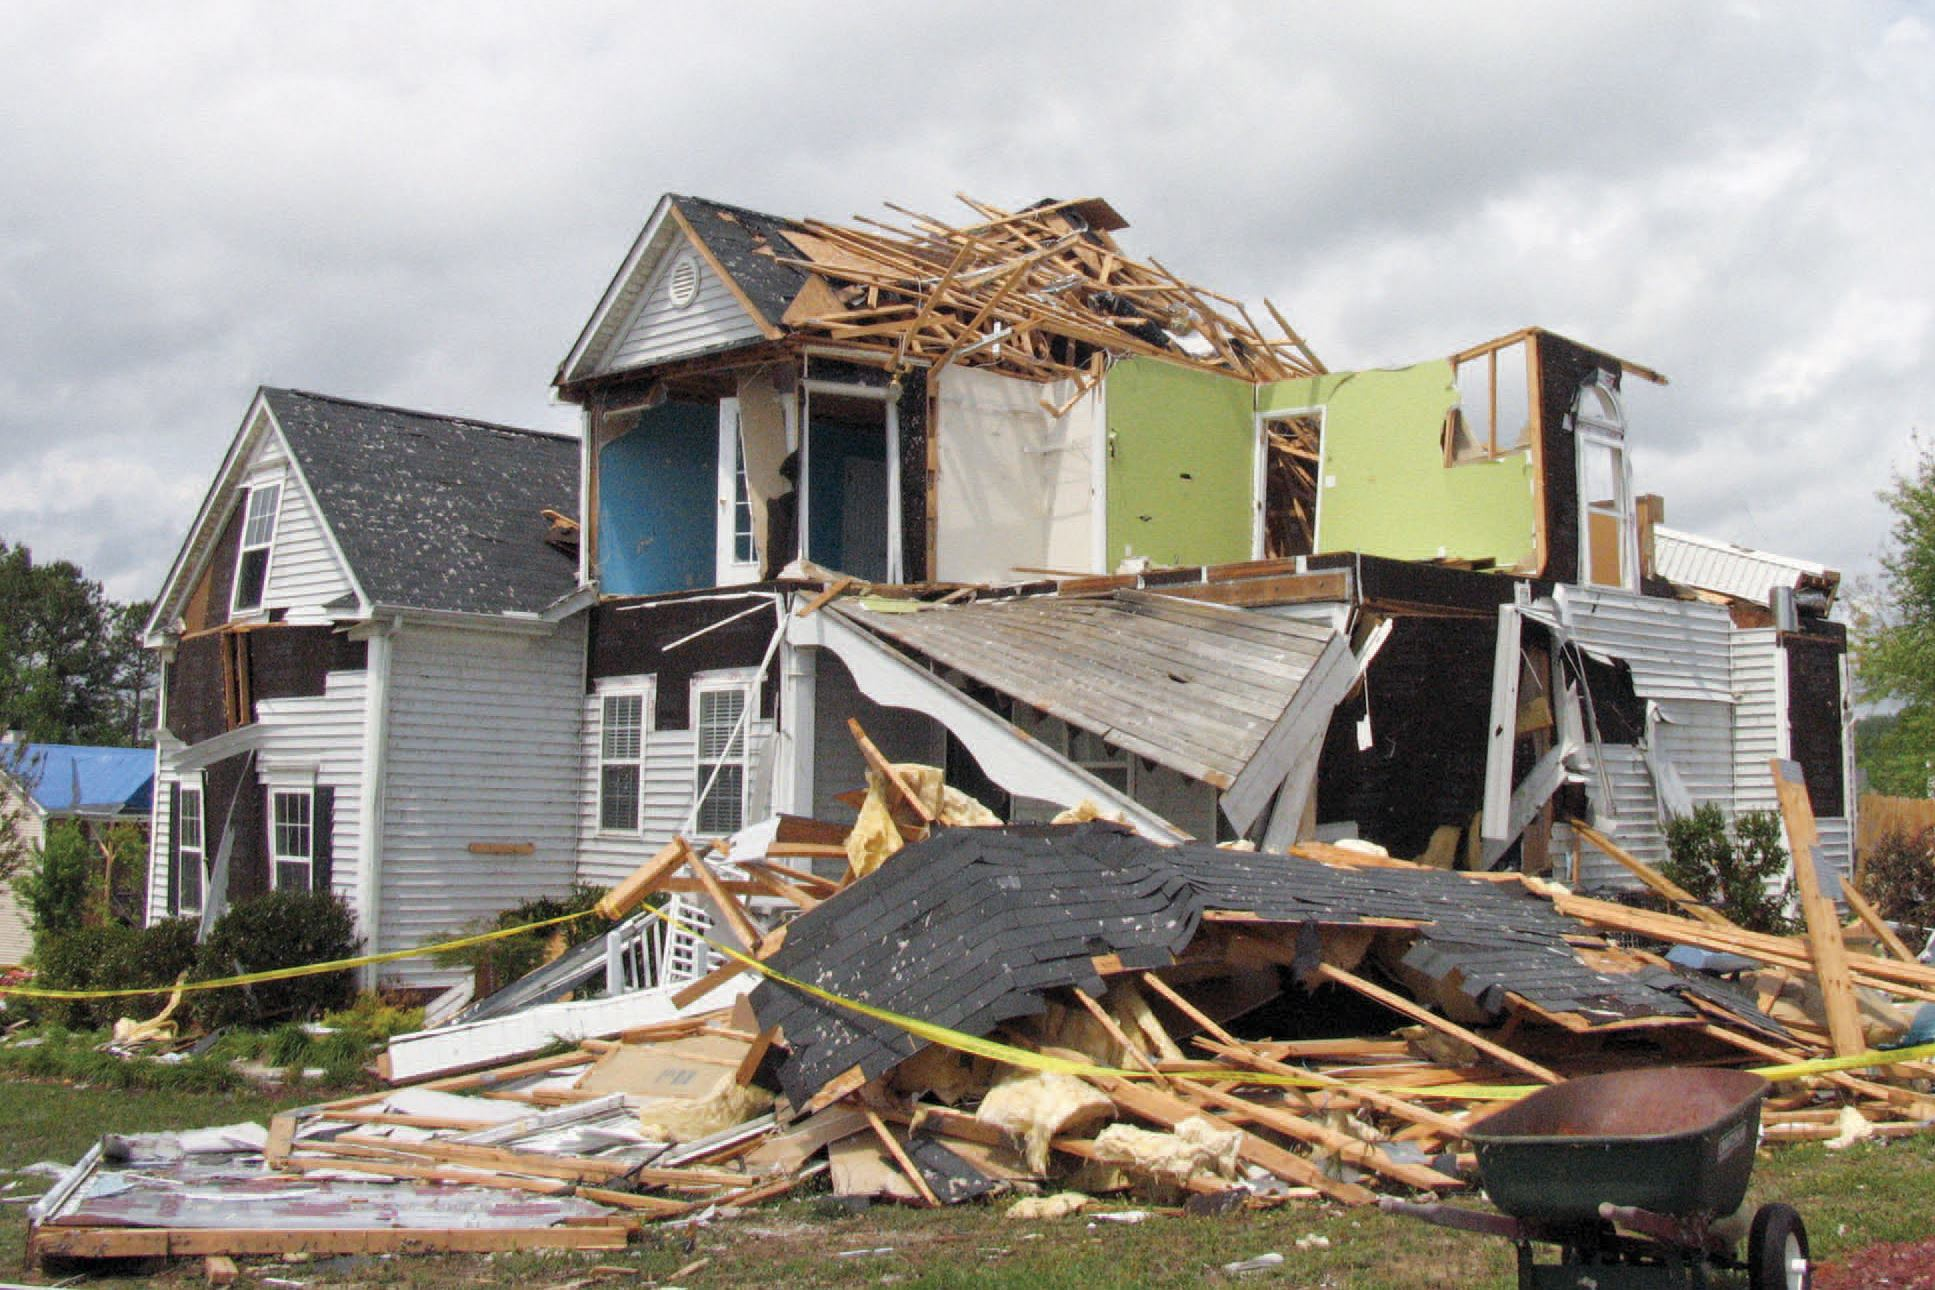 Engineer S Assessment Of Tornado Damaged Homes Jlc Online